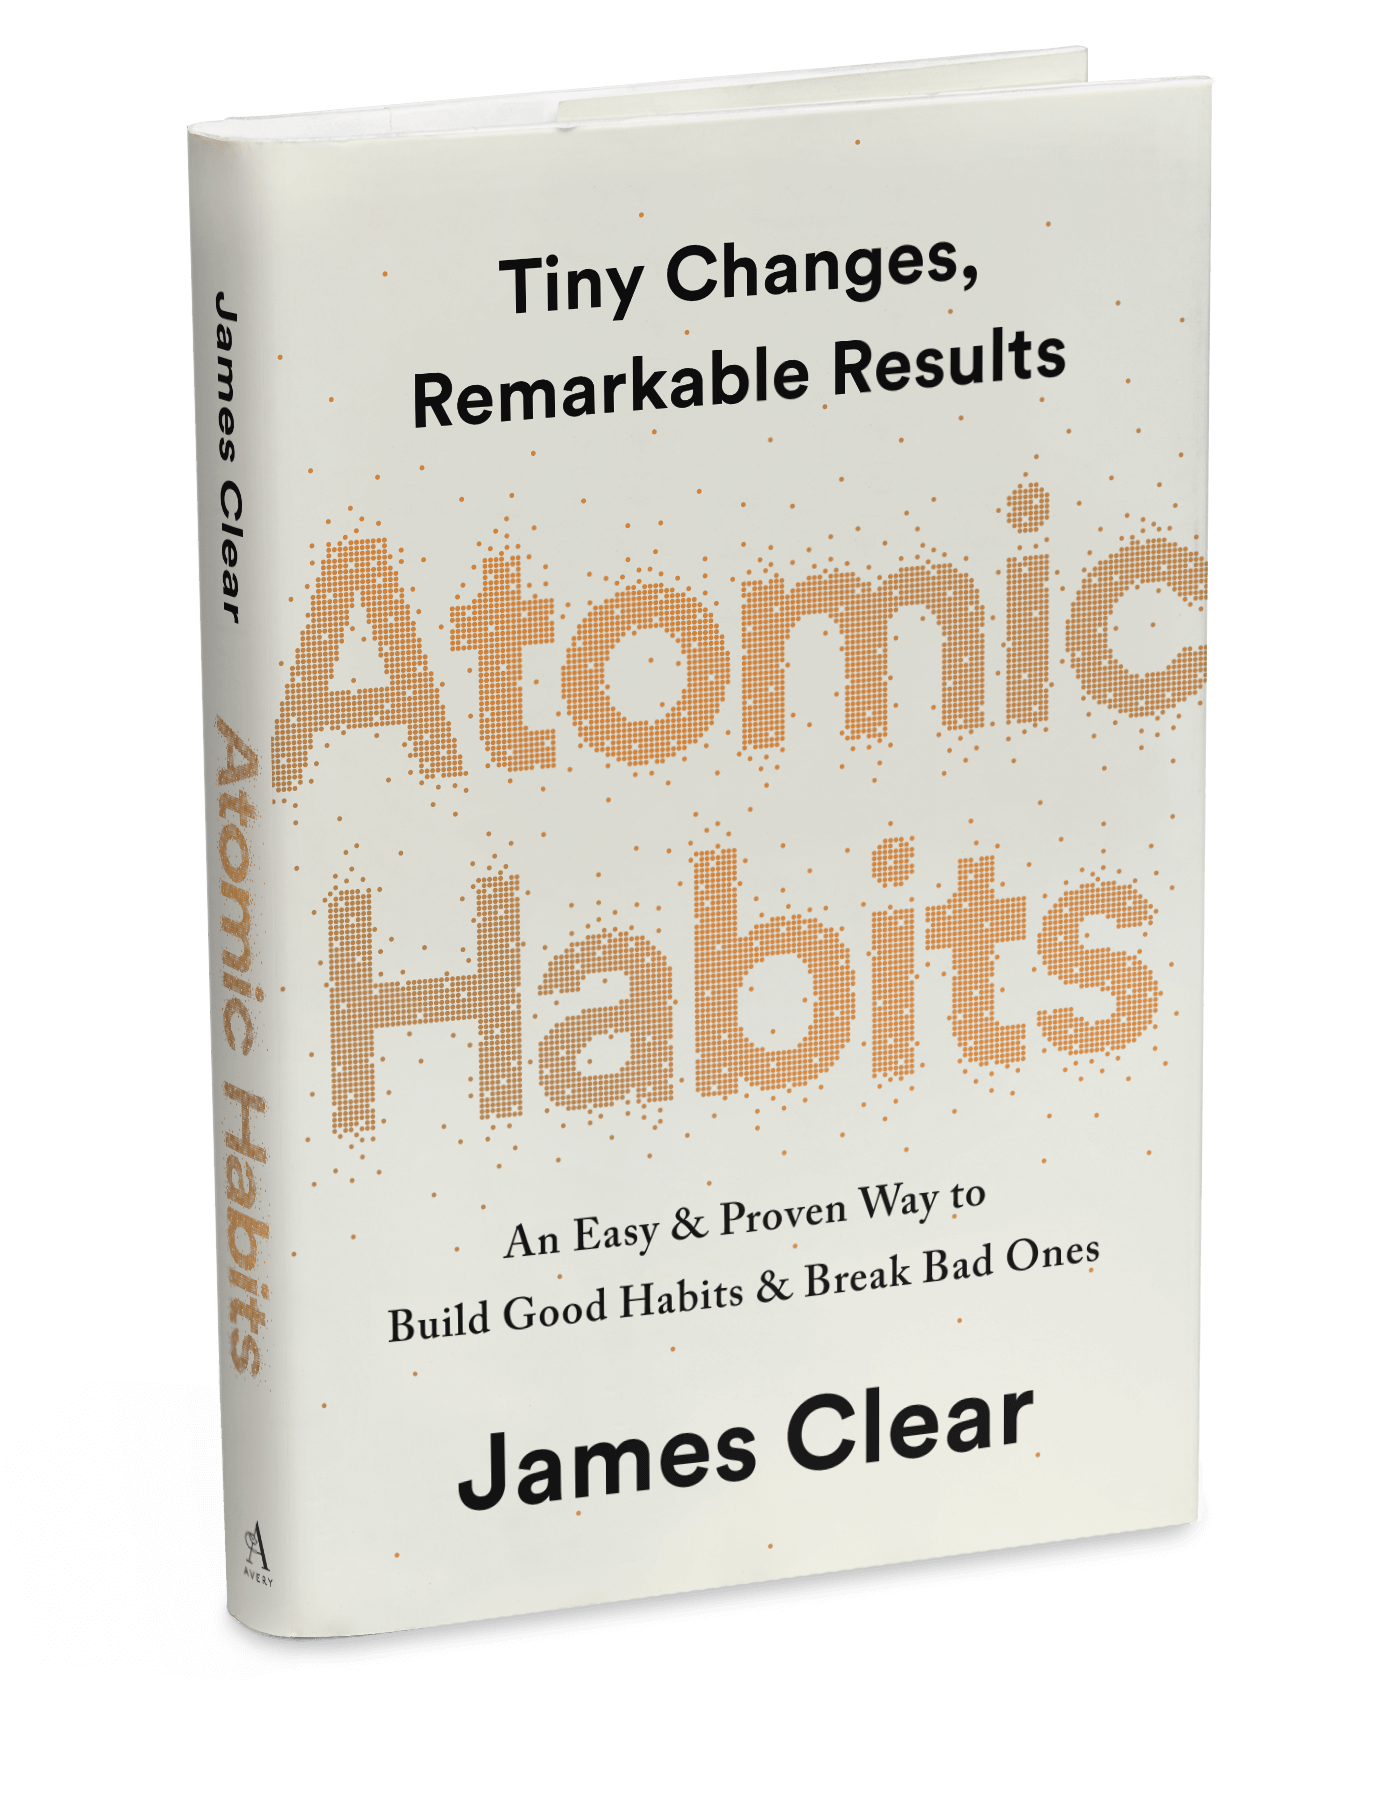 Habits Guide: How to Build Good Habits and Break Bad Ones